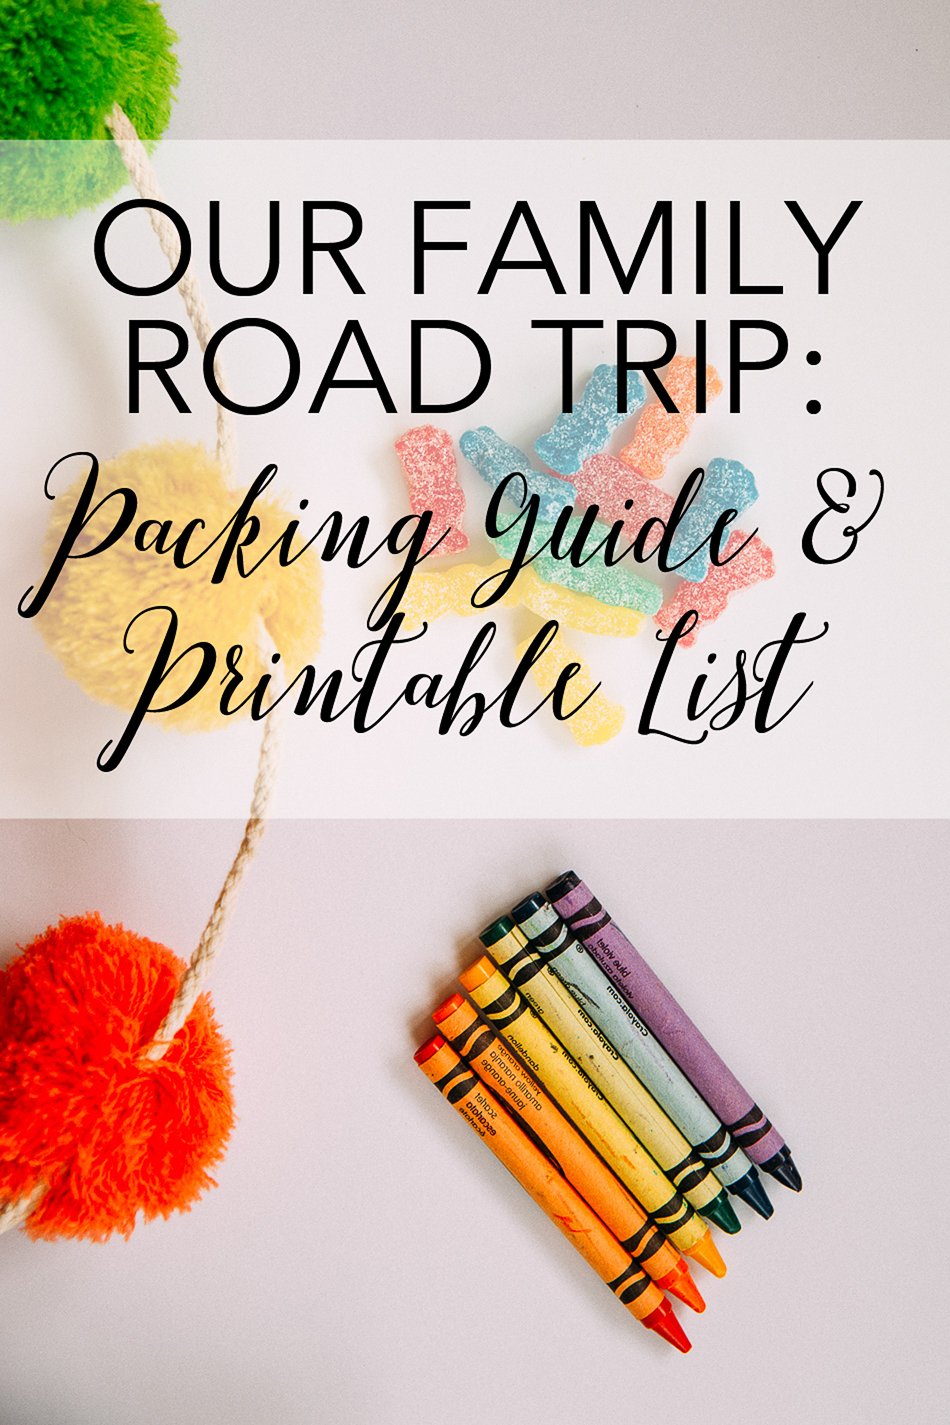 Our Family Road Trip // livelovesimple.com